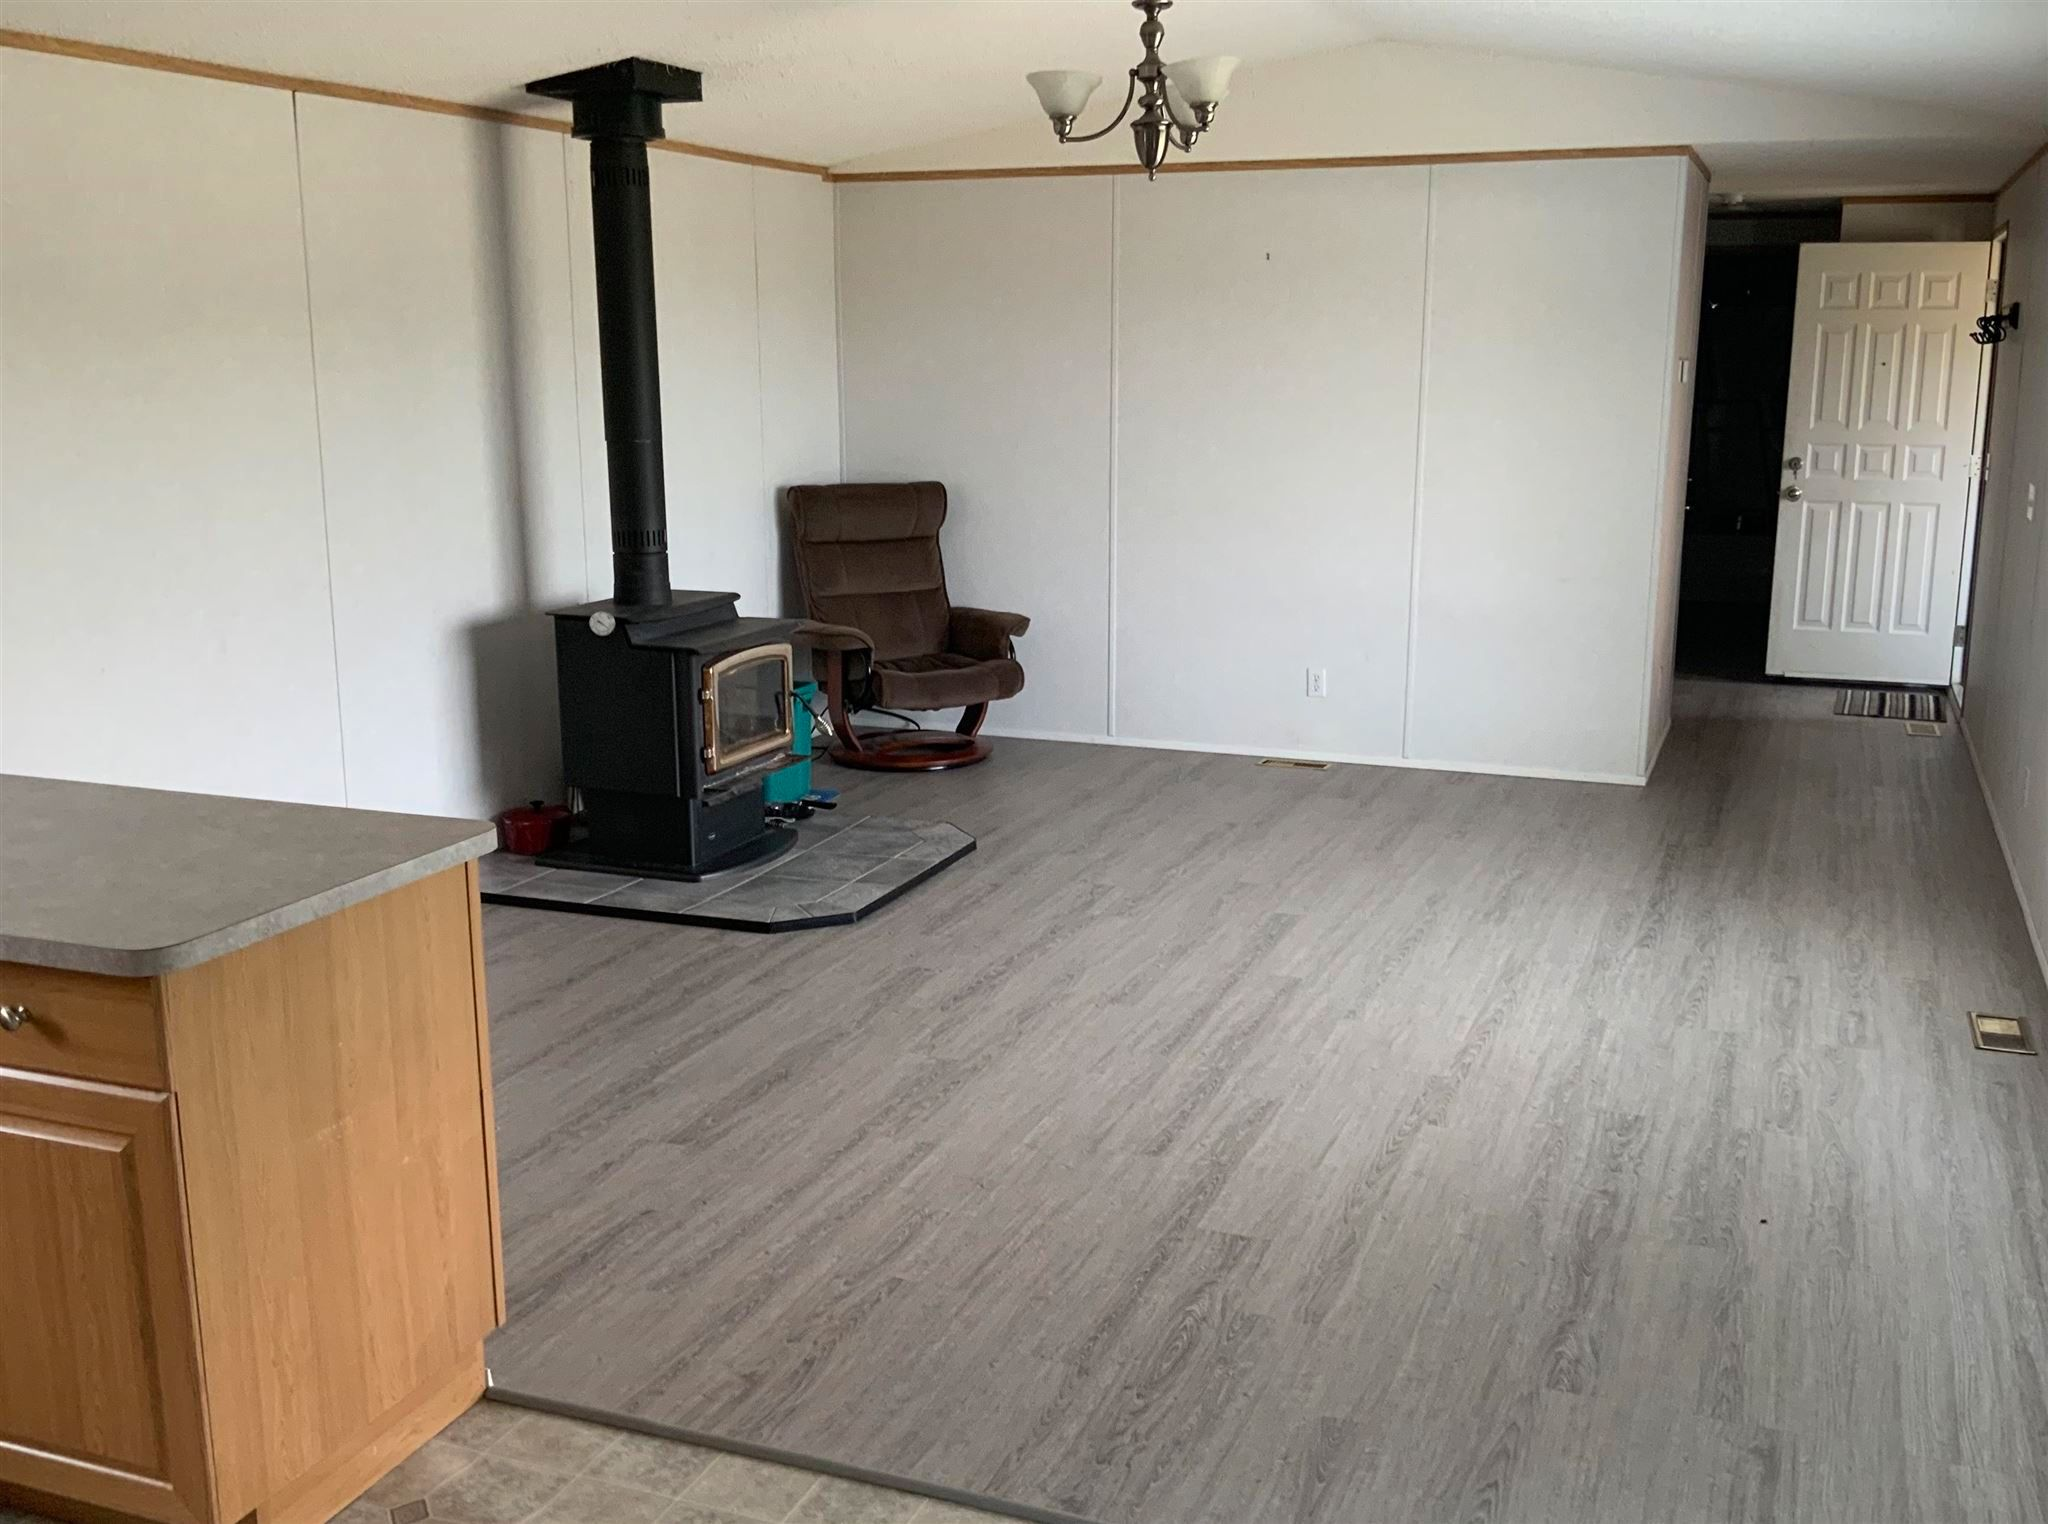 """Photo 4: Photos: 1206 GARCIA Road in Fort St. John: Fort St. John - Rural E 100th Manufactured Home for sale in """"GARCIA ROAD"""" (Fort St. John (Zone 60))  : MLS®# R2597287"""